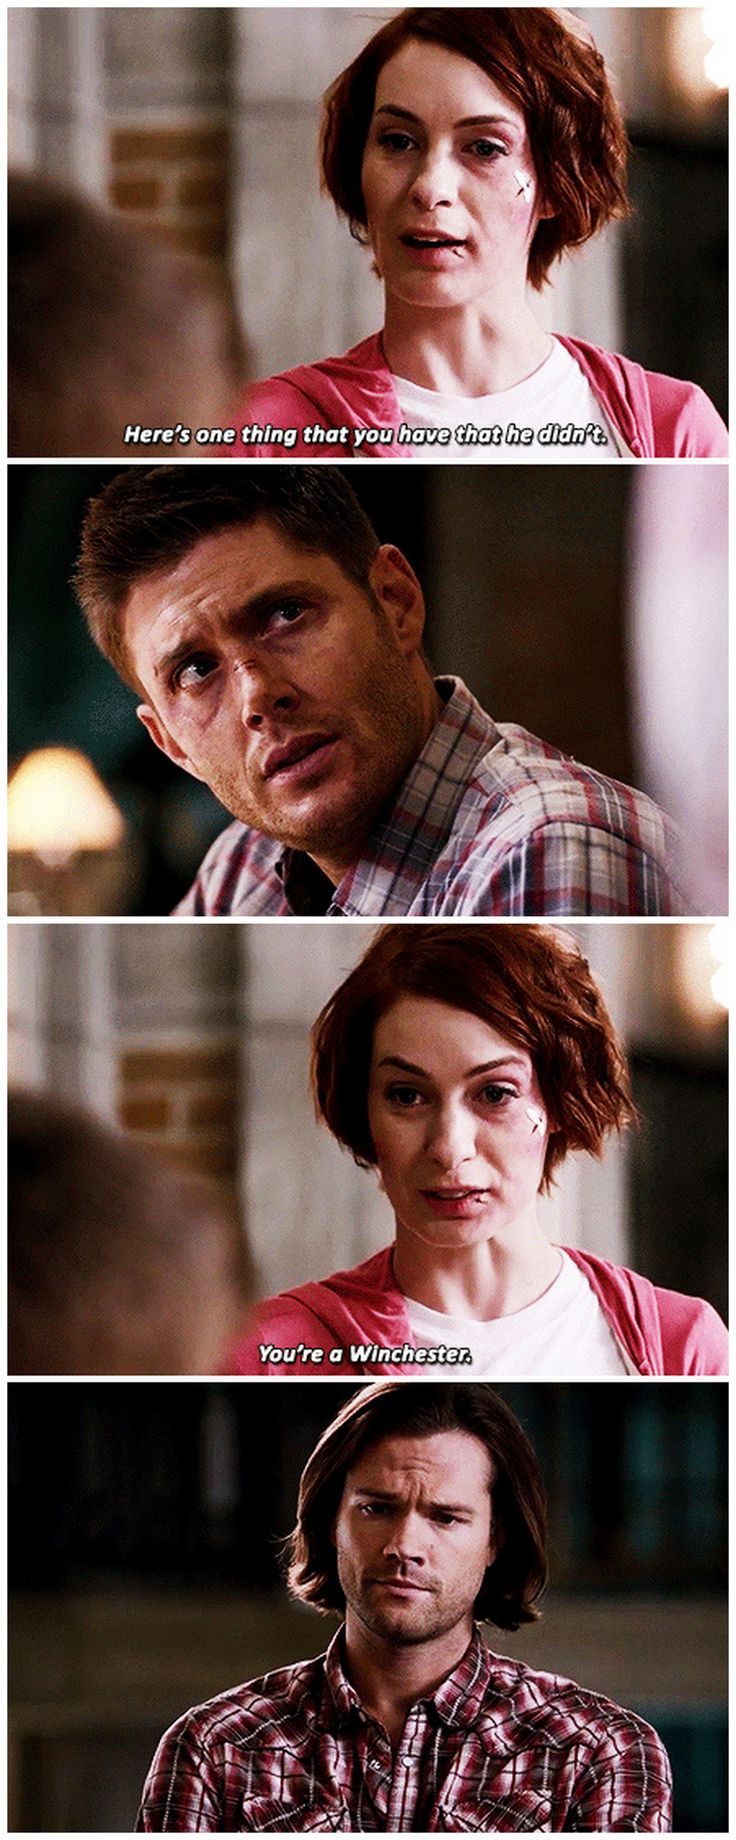 And being a Winchester means never giving up and always having your brother by your side.